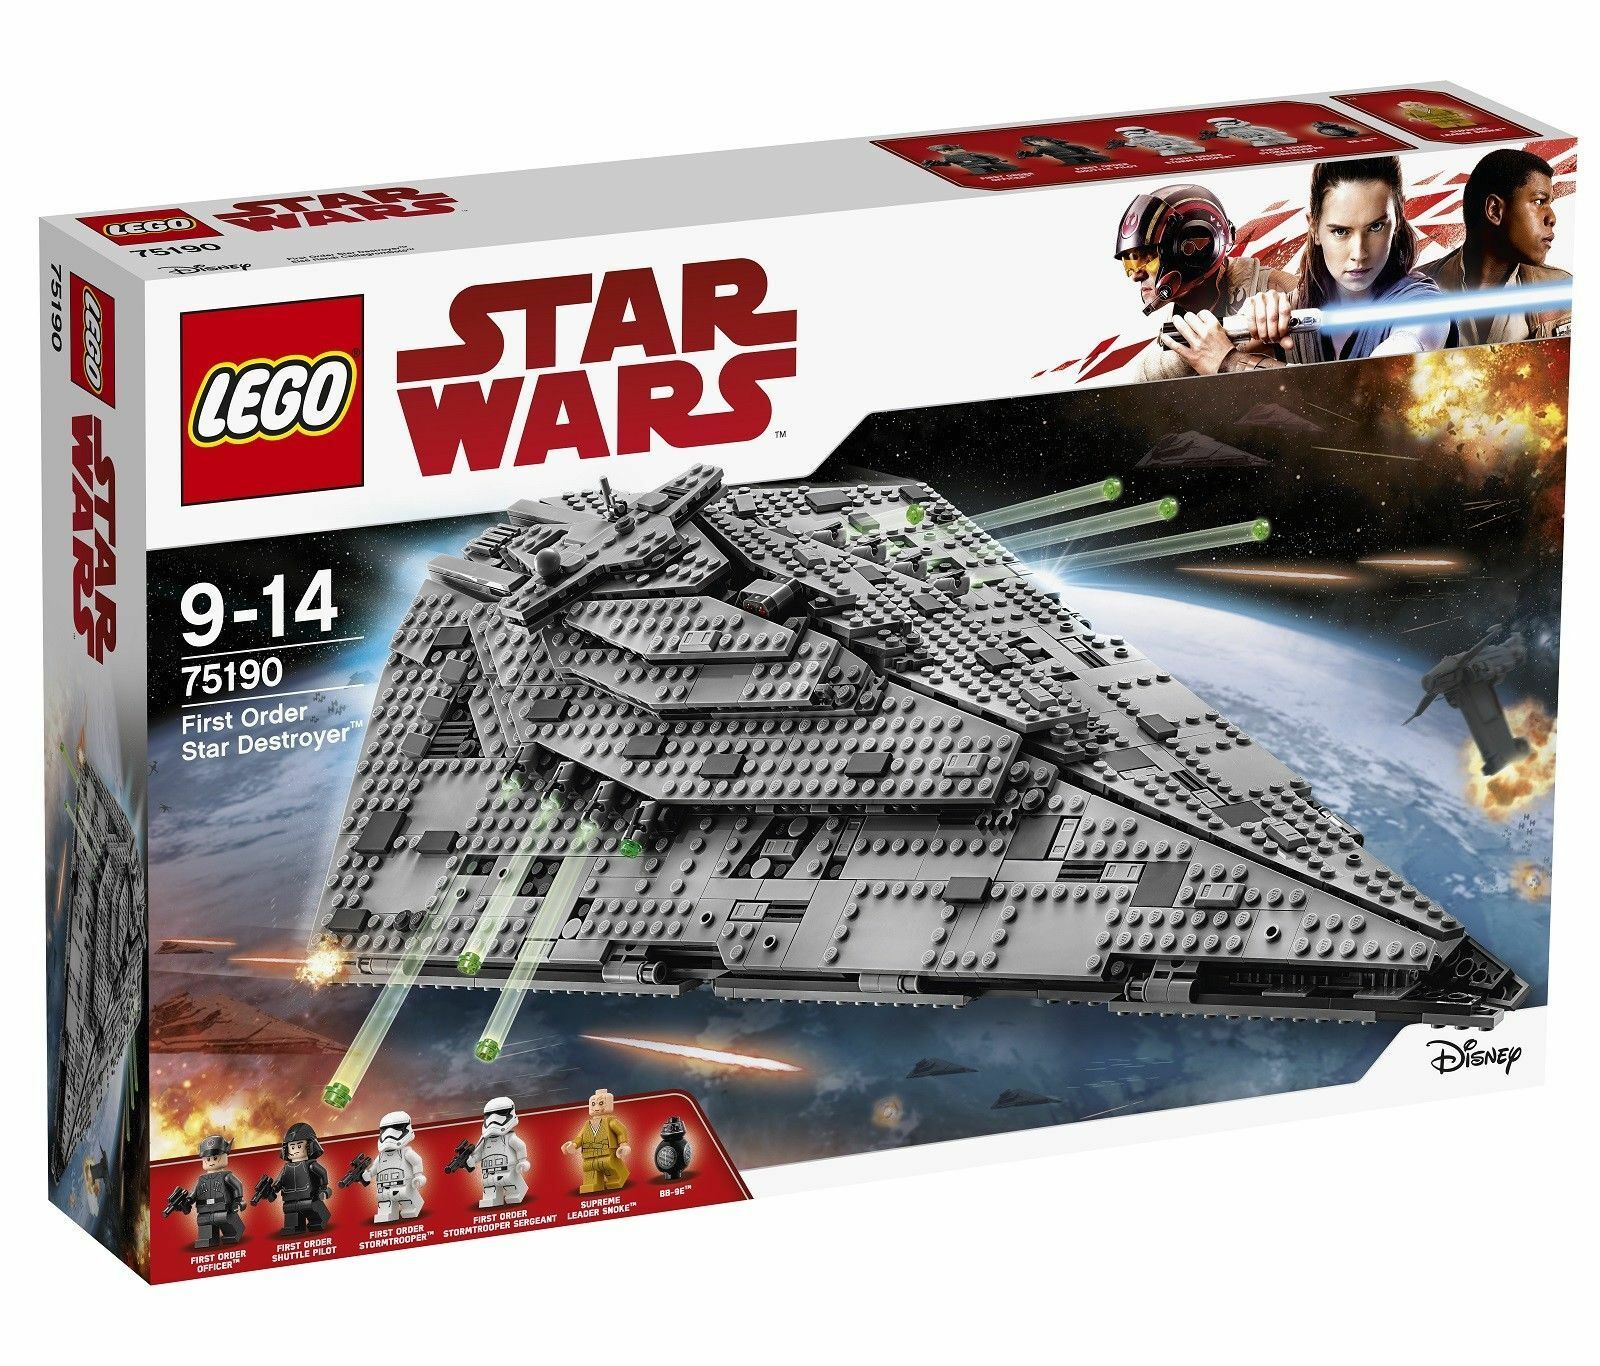 LEGO STAR WARS - 75190 - FIRST ORDER STAR DESTROYER - BRAND NEW & SEALED 2